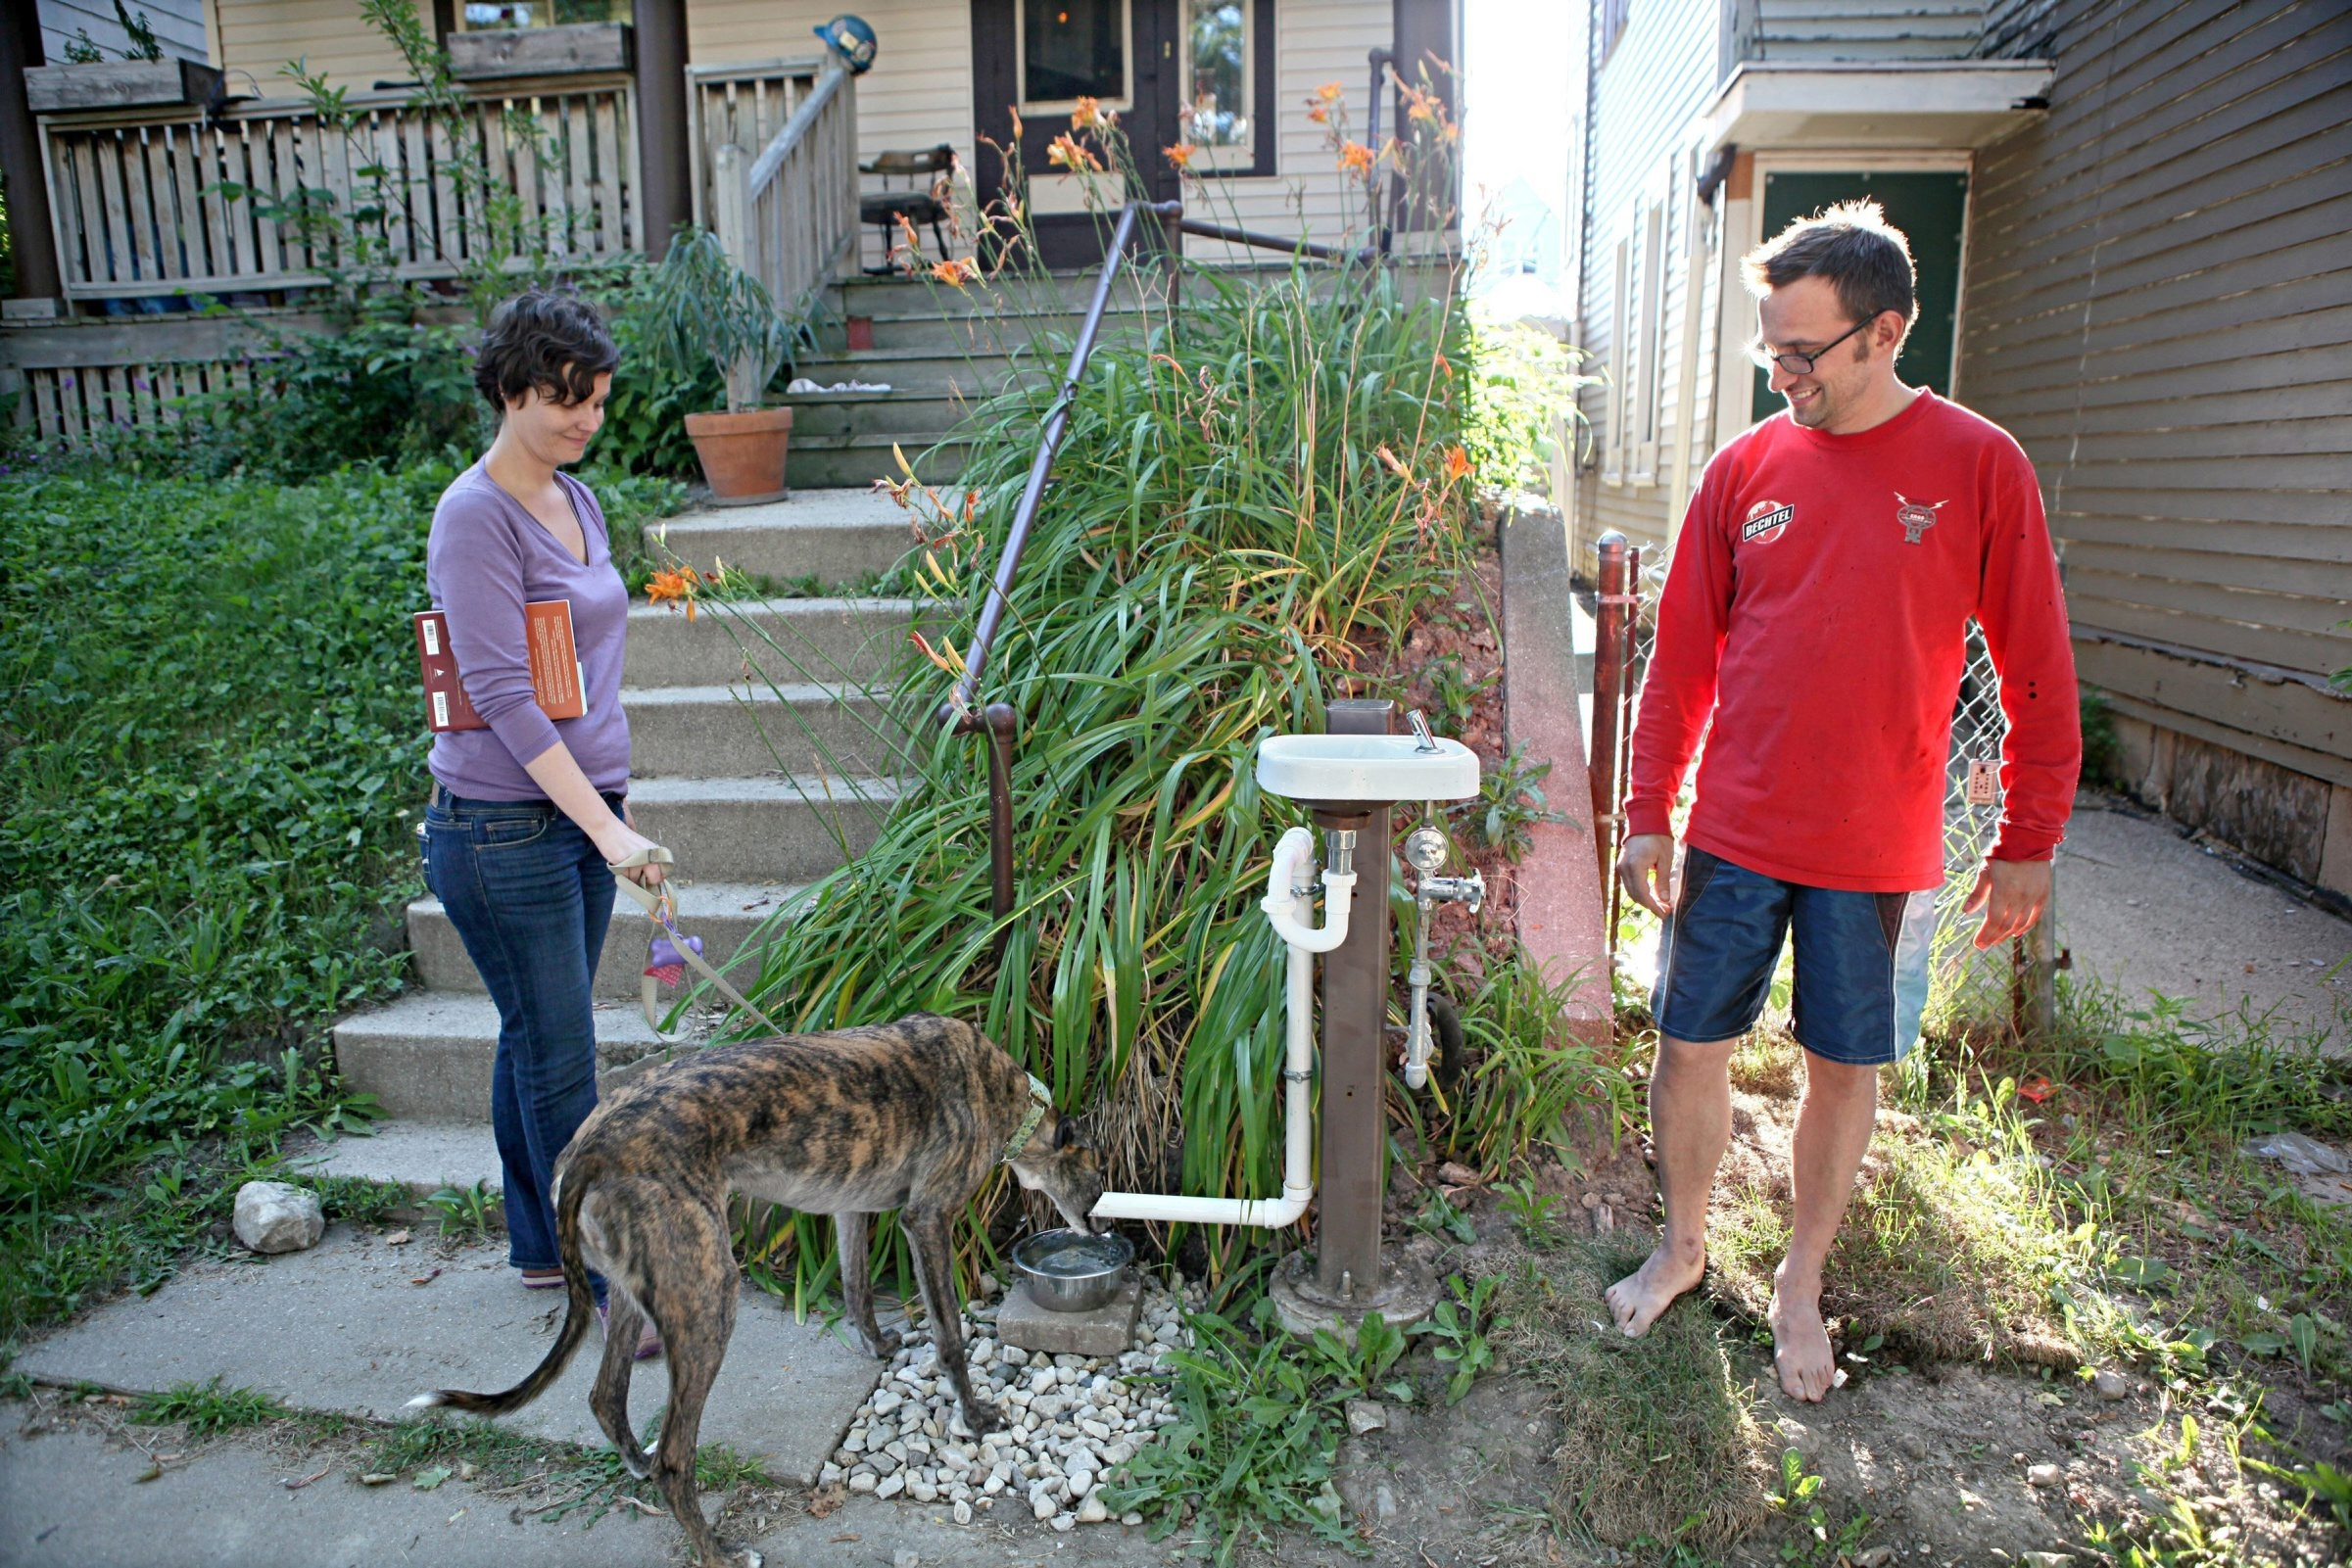 Jessica Burch stops to let her dog have a drink from the doggy dish as they walk past Micah MacArthur's house. MacArthur, right, installed the bubbler that he built in front of his house for public use in Milwaukee's Riverwest neighborhood.